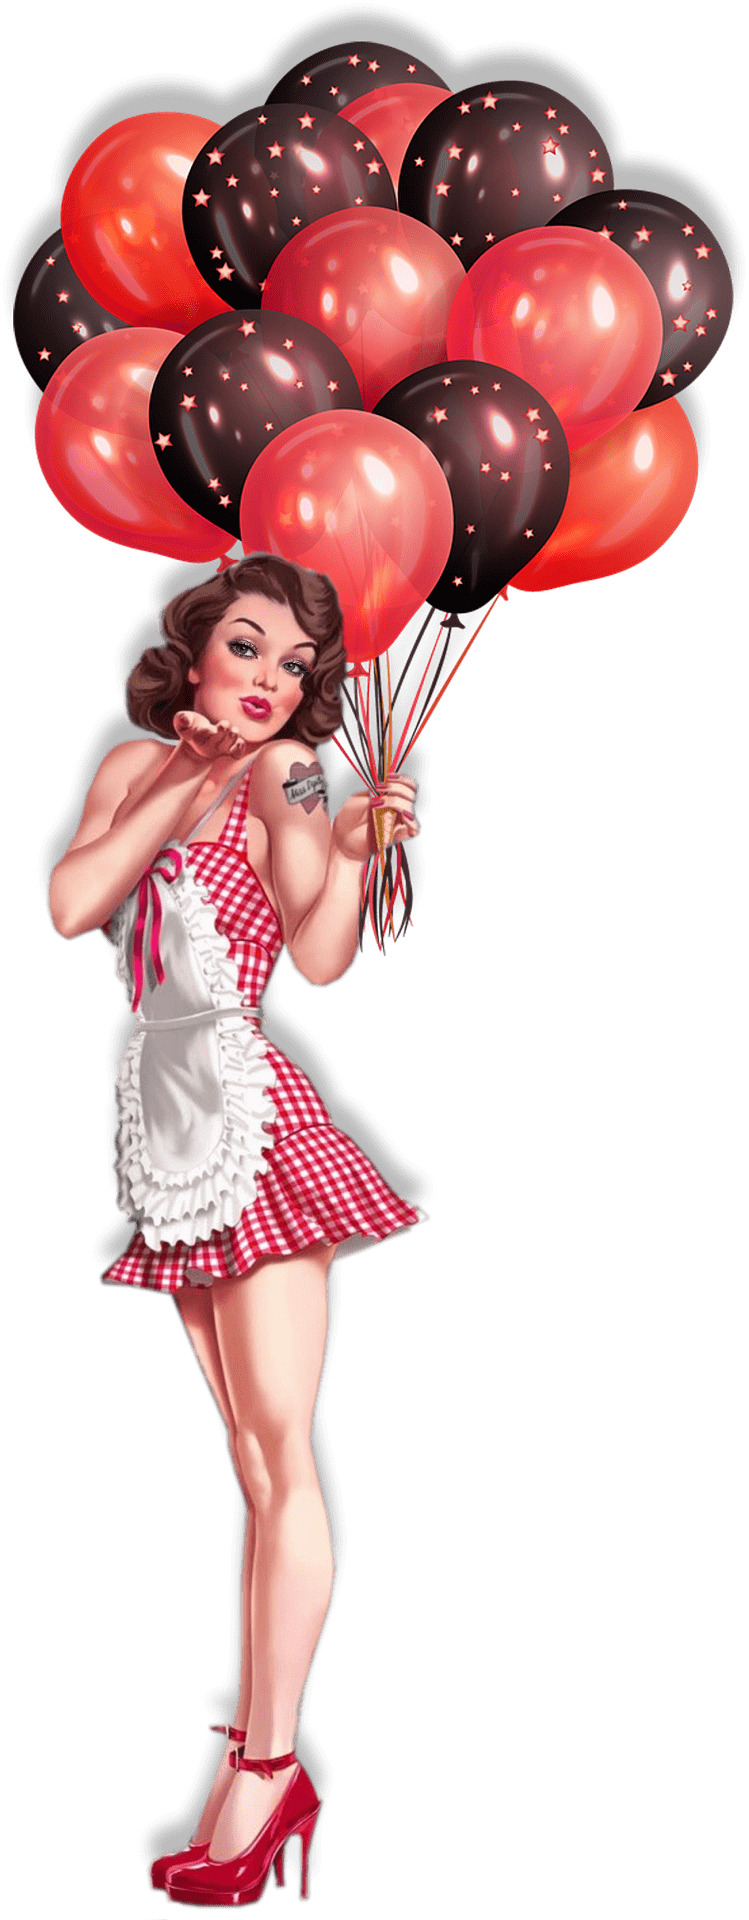 Pin Up  Balloons Vine Illustration - Download on PNGPX